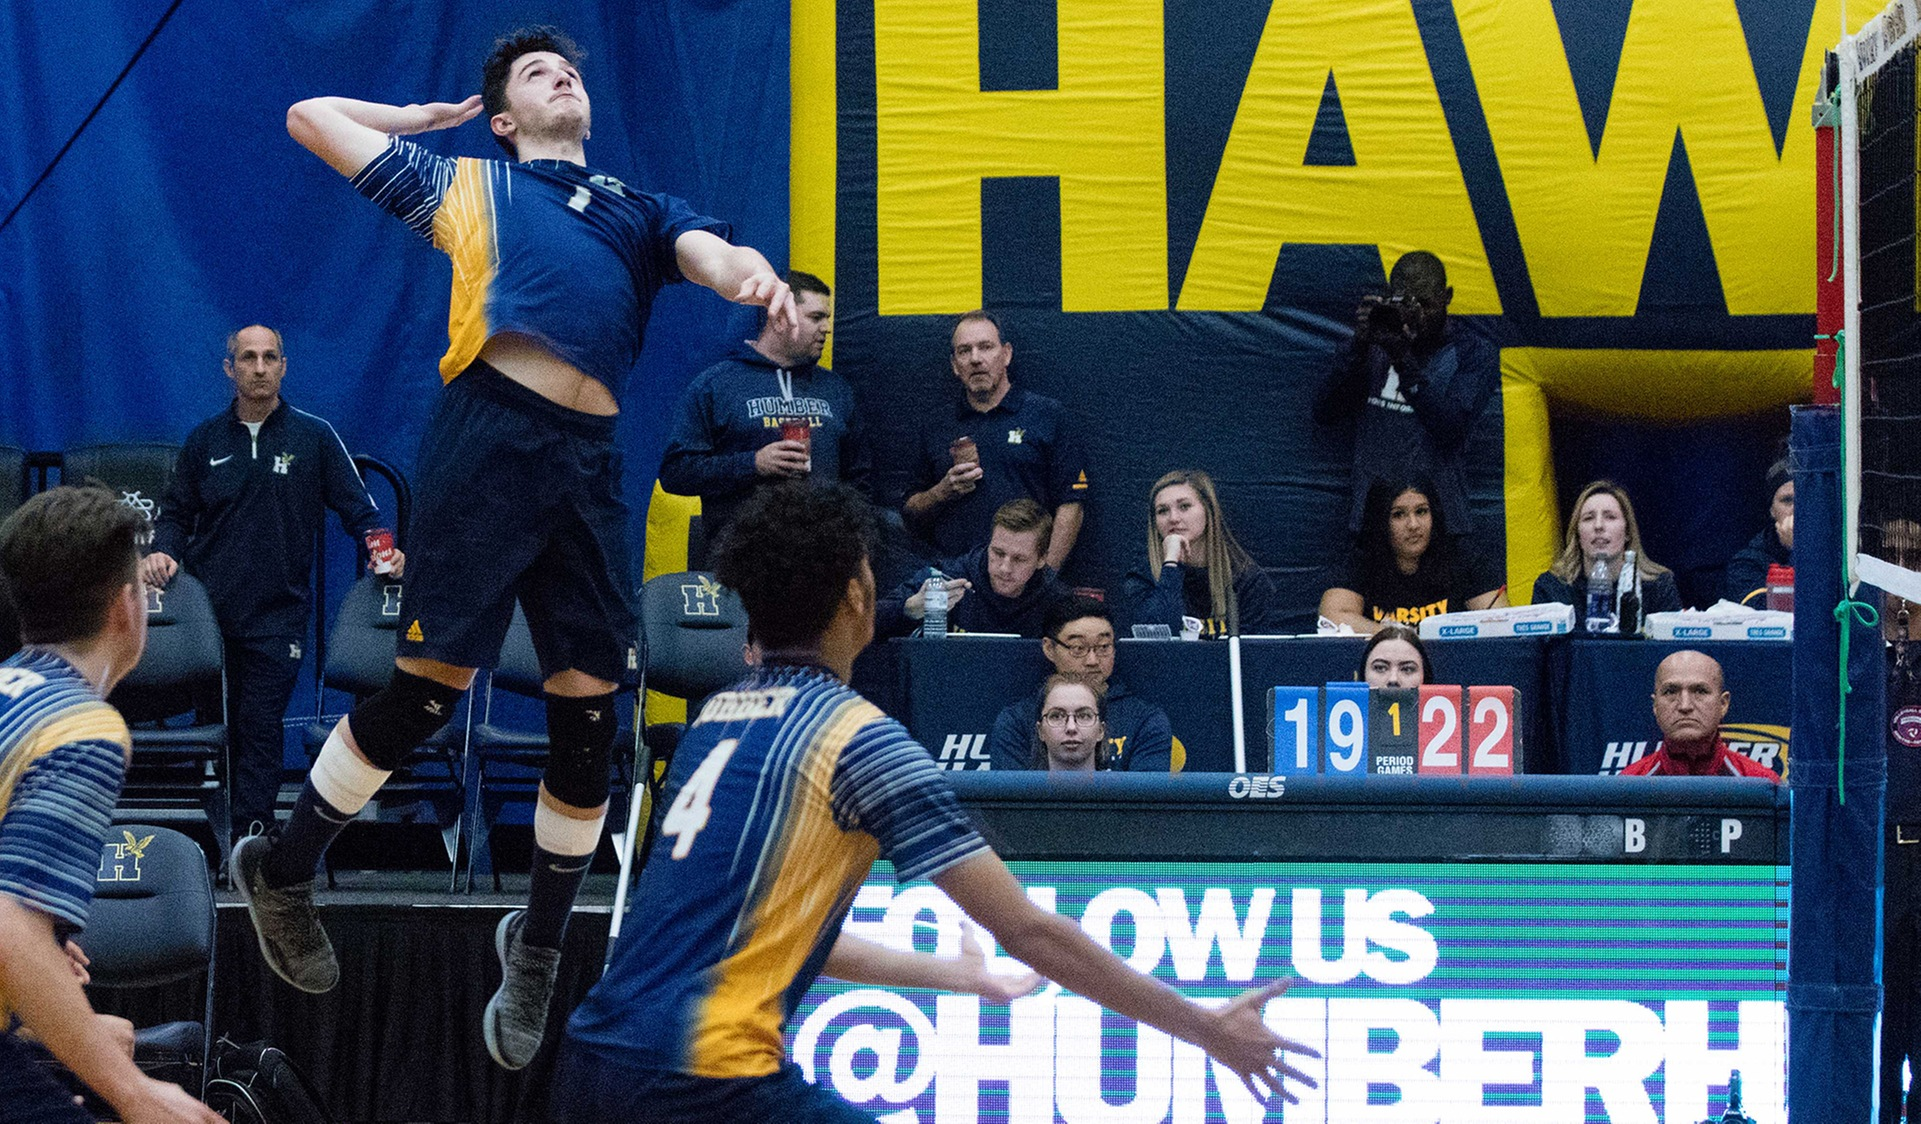 HAWKS MEN'S VOLLEYBALL WIN 2 OF 3 AT YORK UNIVERSITY TOURNAMENT